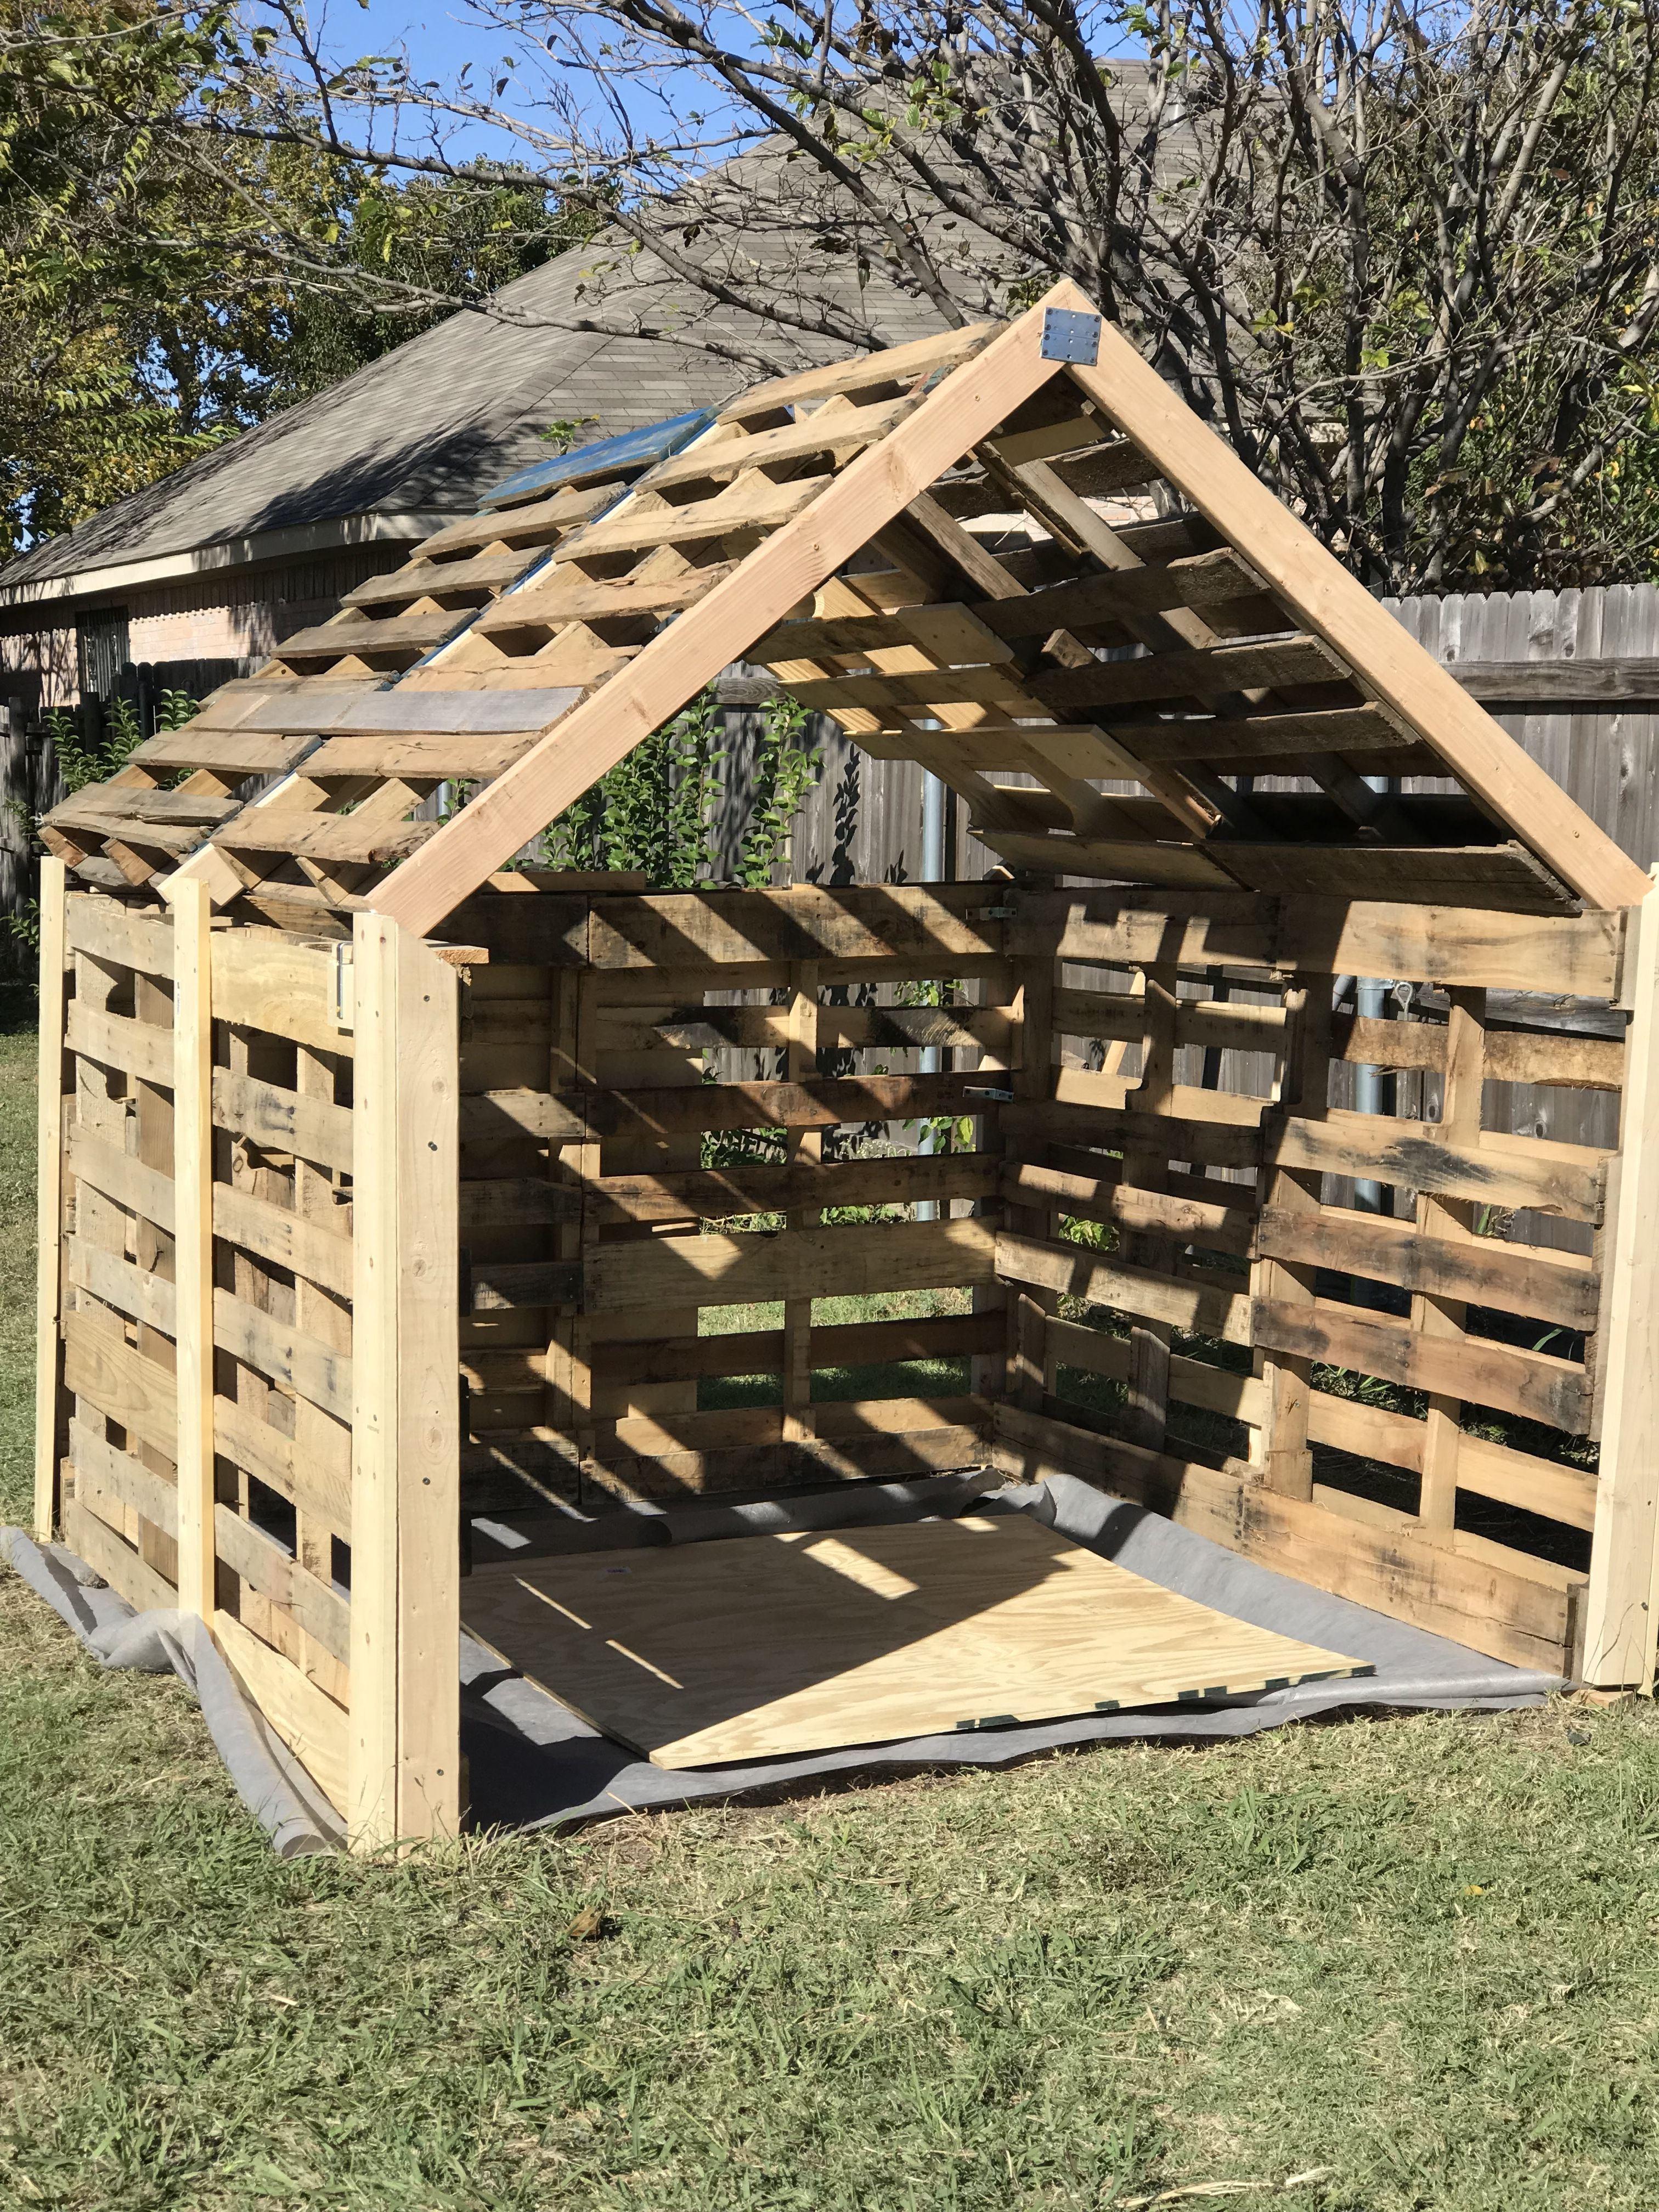 Shed For My Riding Lawn Mower Made Out Of Pallets Super